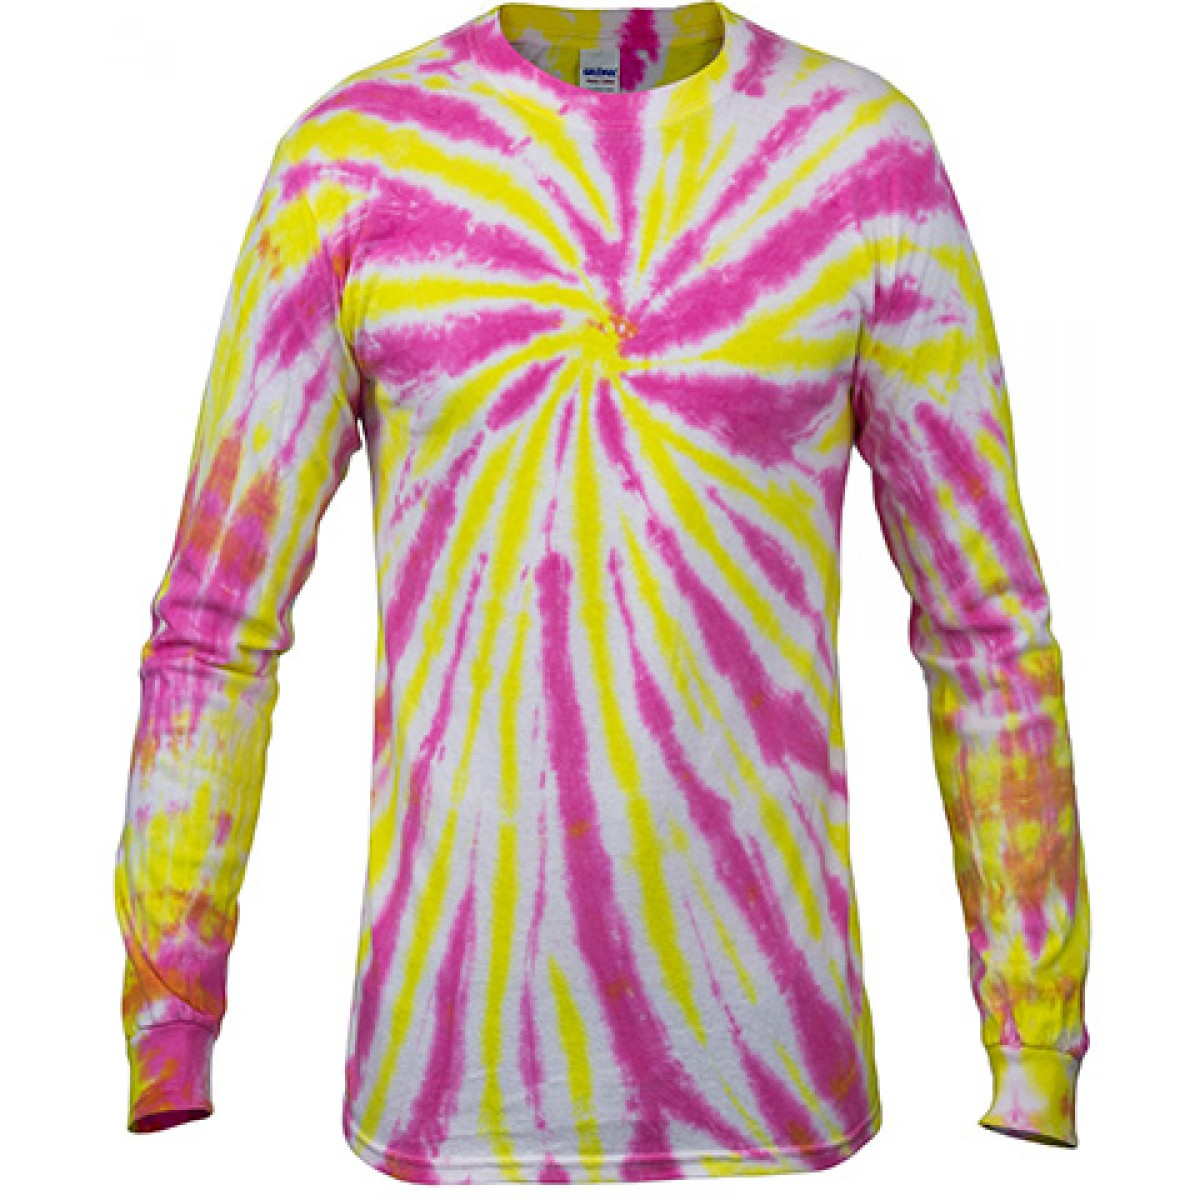 Multi Color Tie-Dye Long Sleeve Shirt -Pink-S